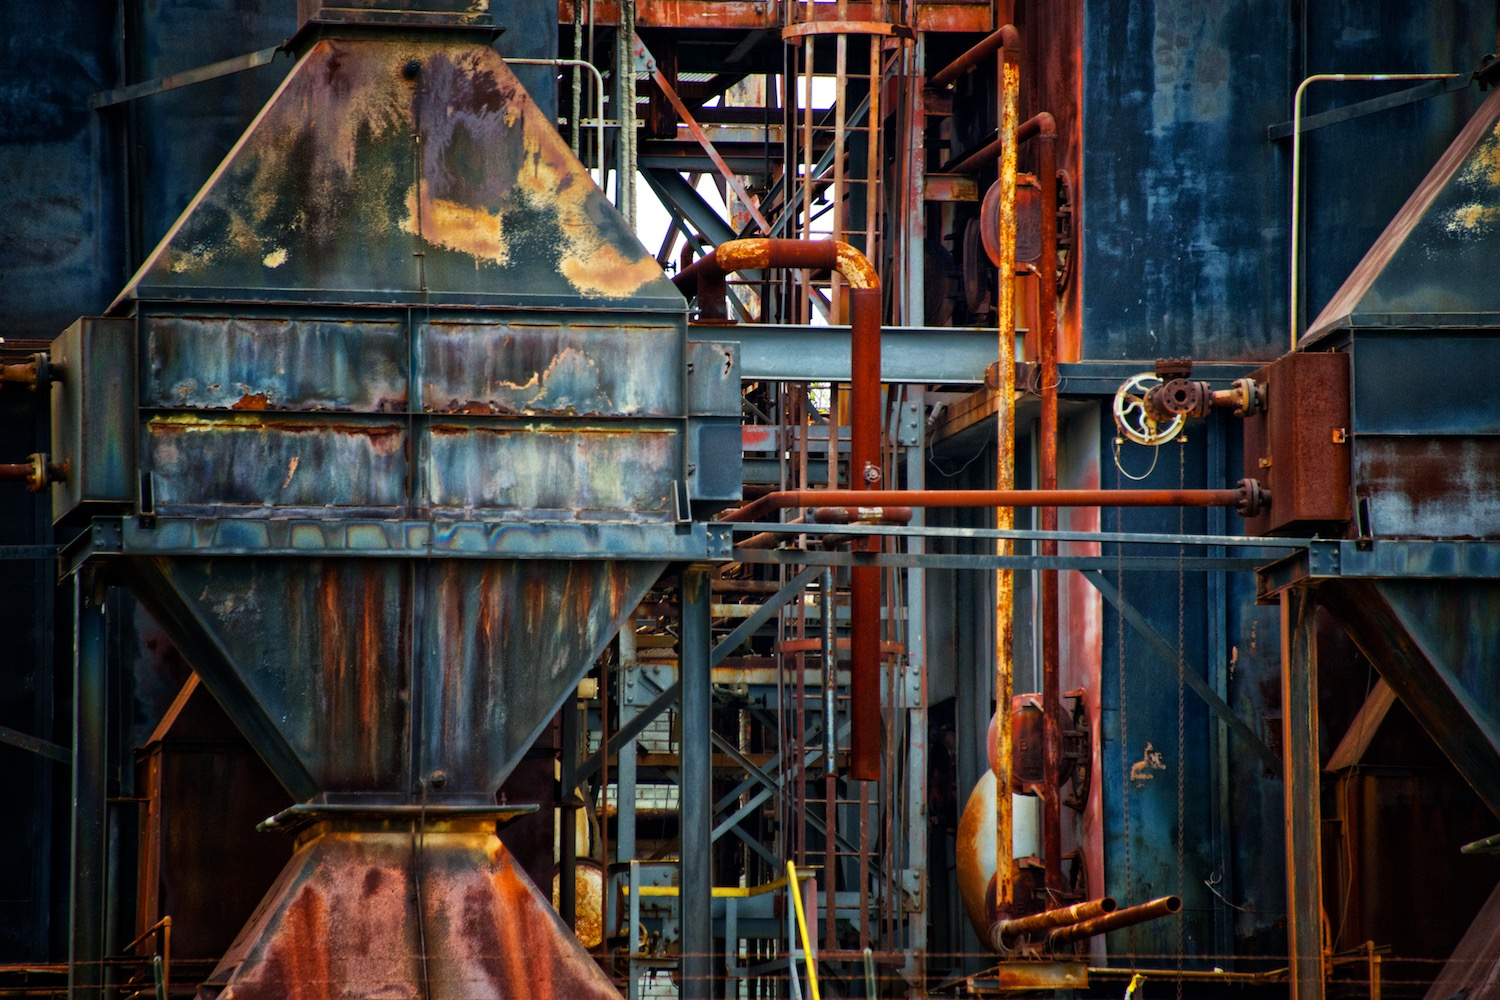 Industrious_20134.jpg